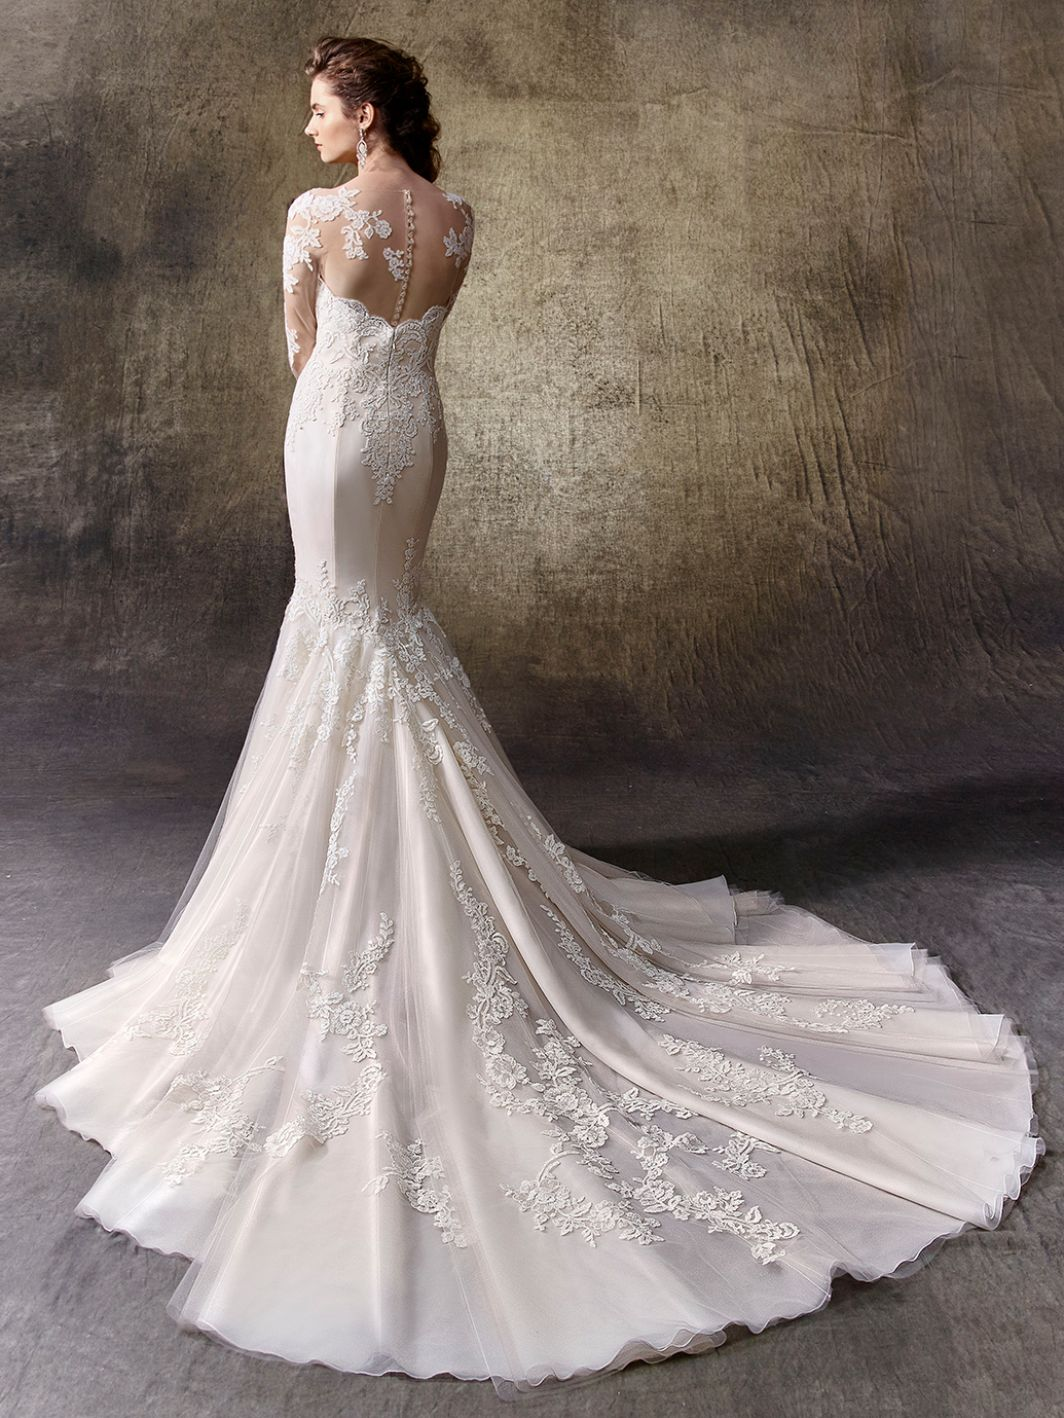 Lindy - Sample Gown, Online Sample Sale, Enzoani - Sample Gown - Eternal Bridal